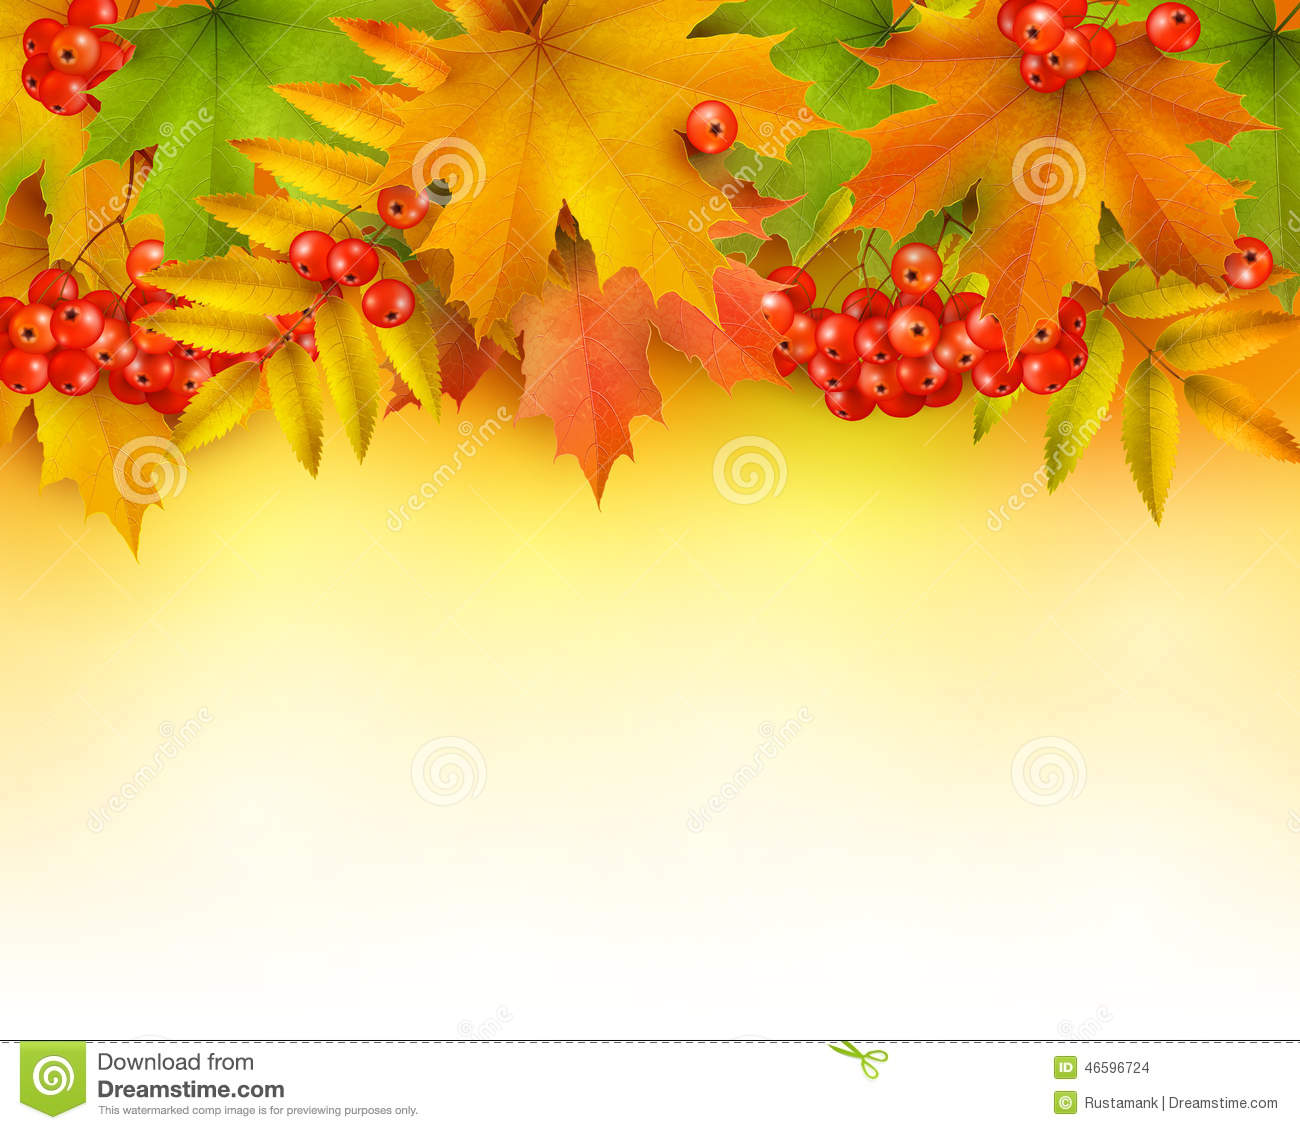 autumn background or border stock vector illustration of